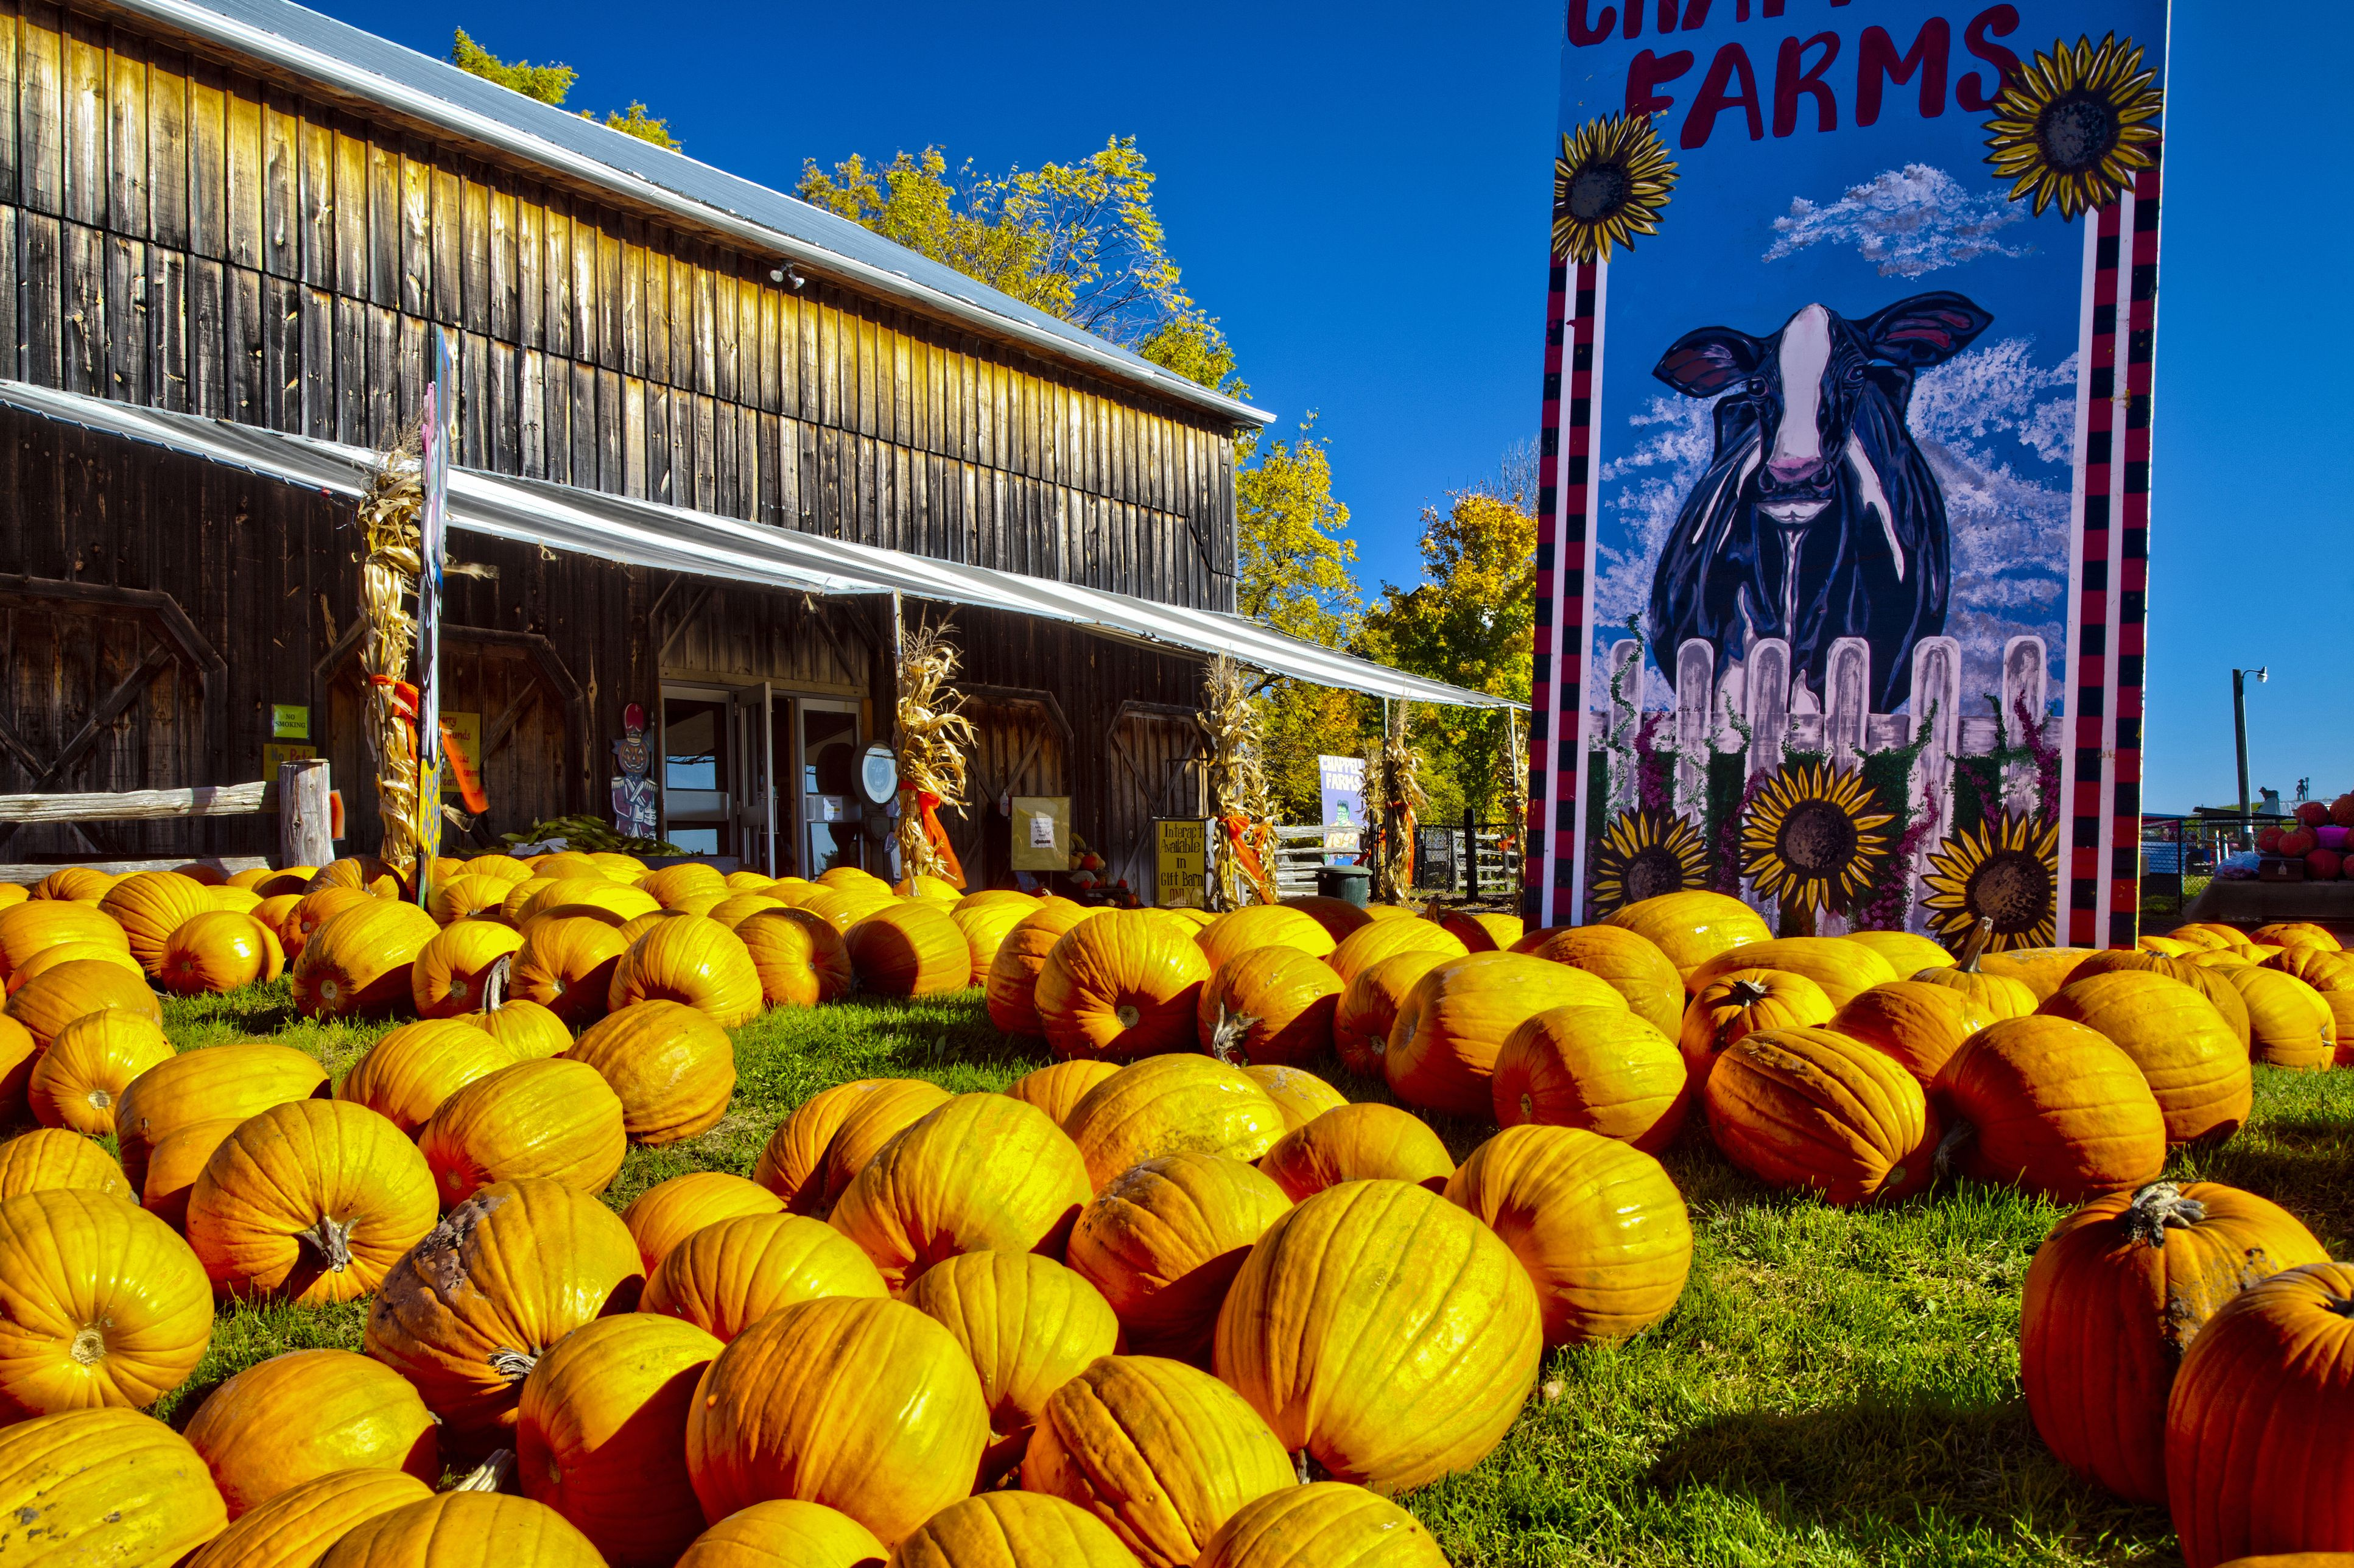 Thanksgiving Corn Farm: What Is Open On Thanksgiving In Canada